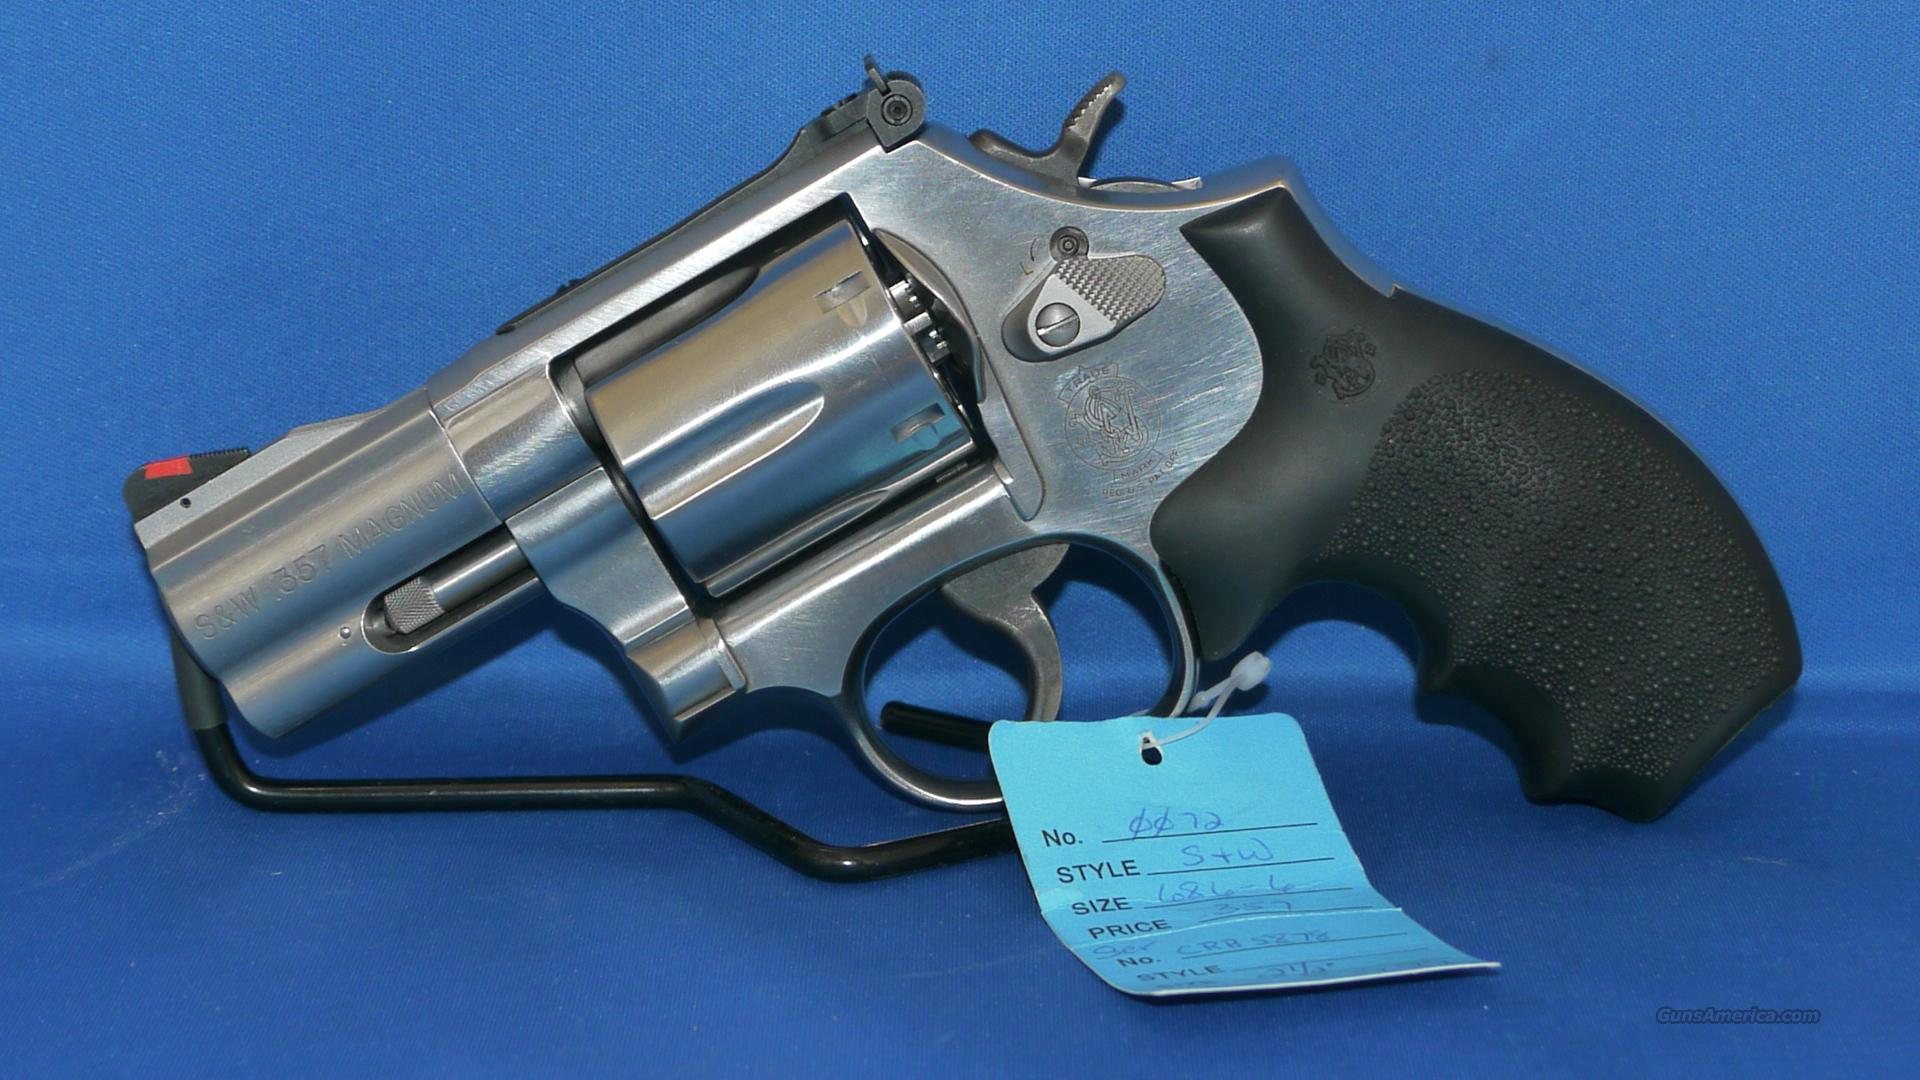 Smith and Wesson Model 686-2 .357 Mag 6 Shot Revolver  Guns > Pistols > Smith & Wesson Revolvers > Pocket Pistols